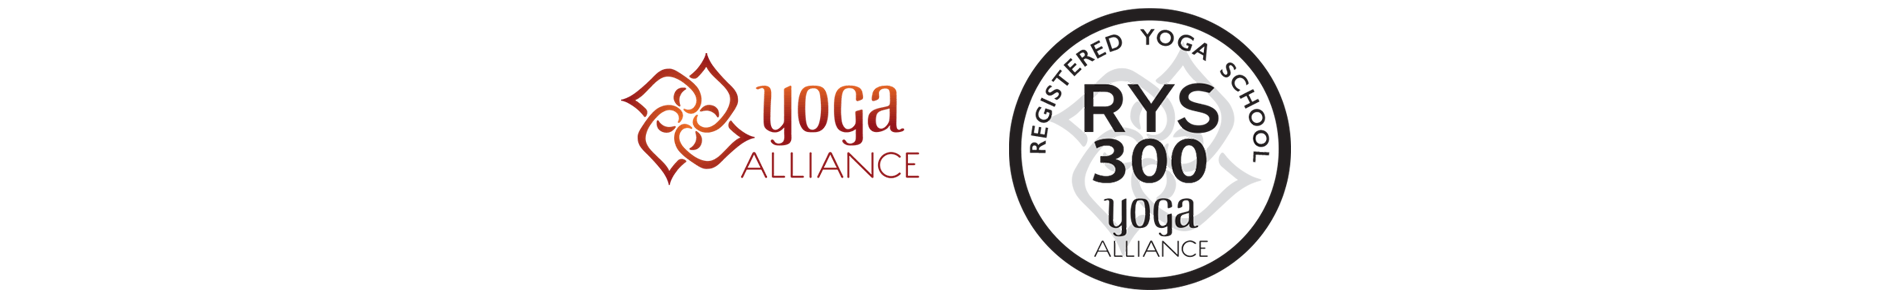 300hr-yoga-alliance-registered-shreehariyoga-1.png